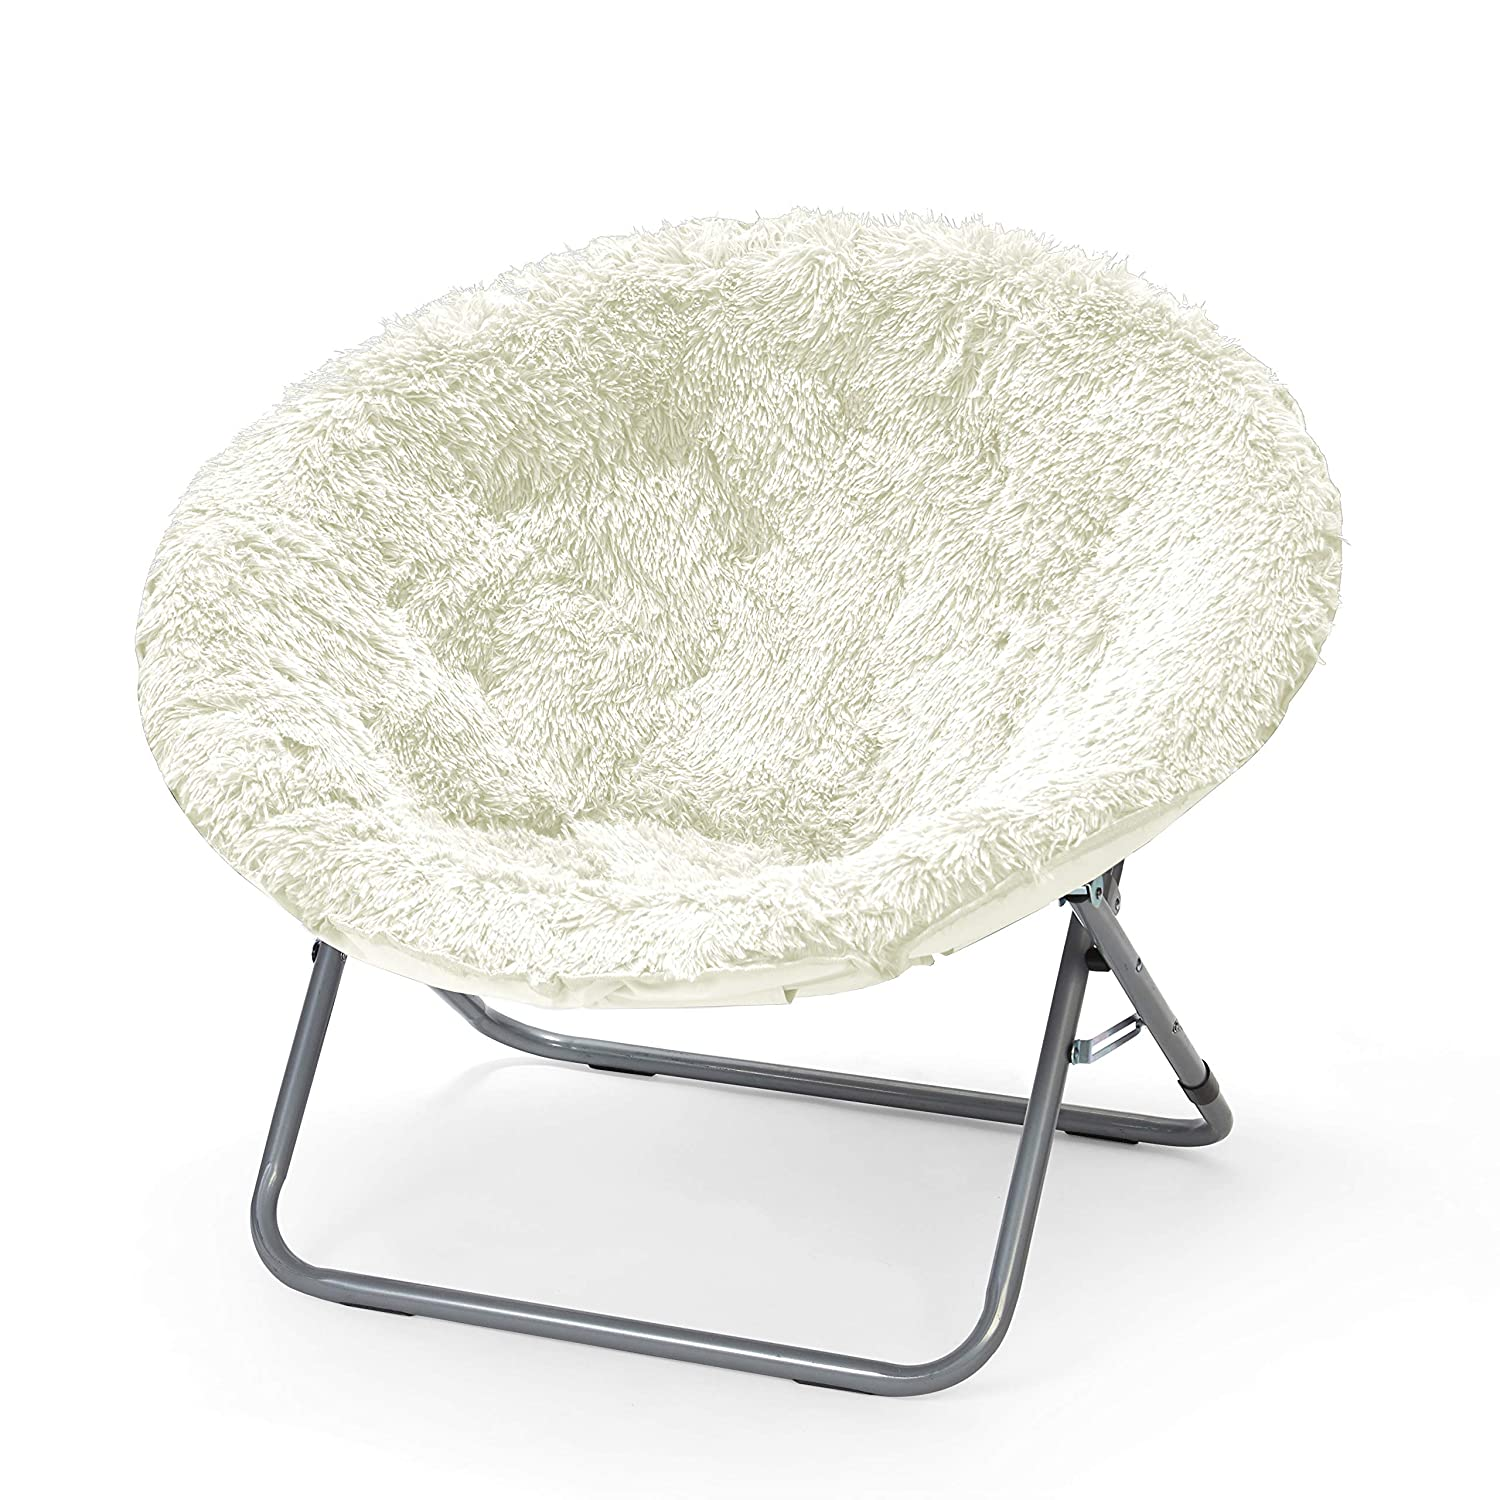 Sensational Folding Chair Soft Wide Seat Mongolian Oversized Moon Chair In White Caraccident5 Cool Chair Designs And Ideas Caraccident5Info